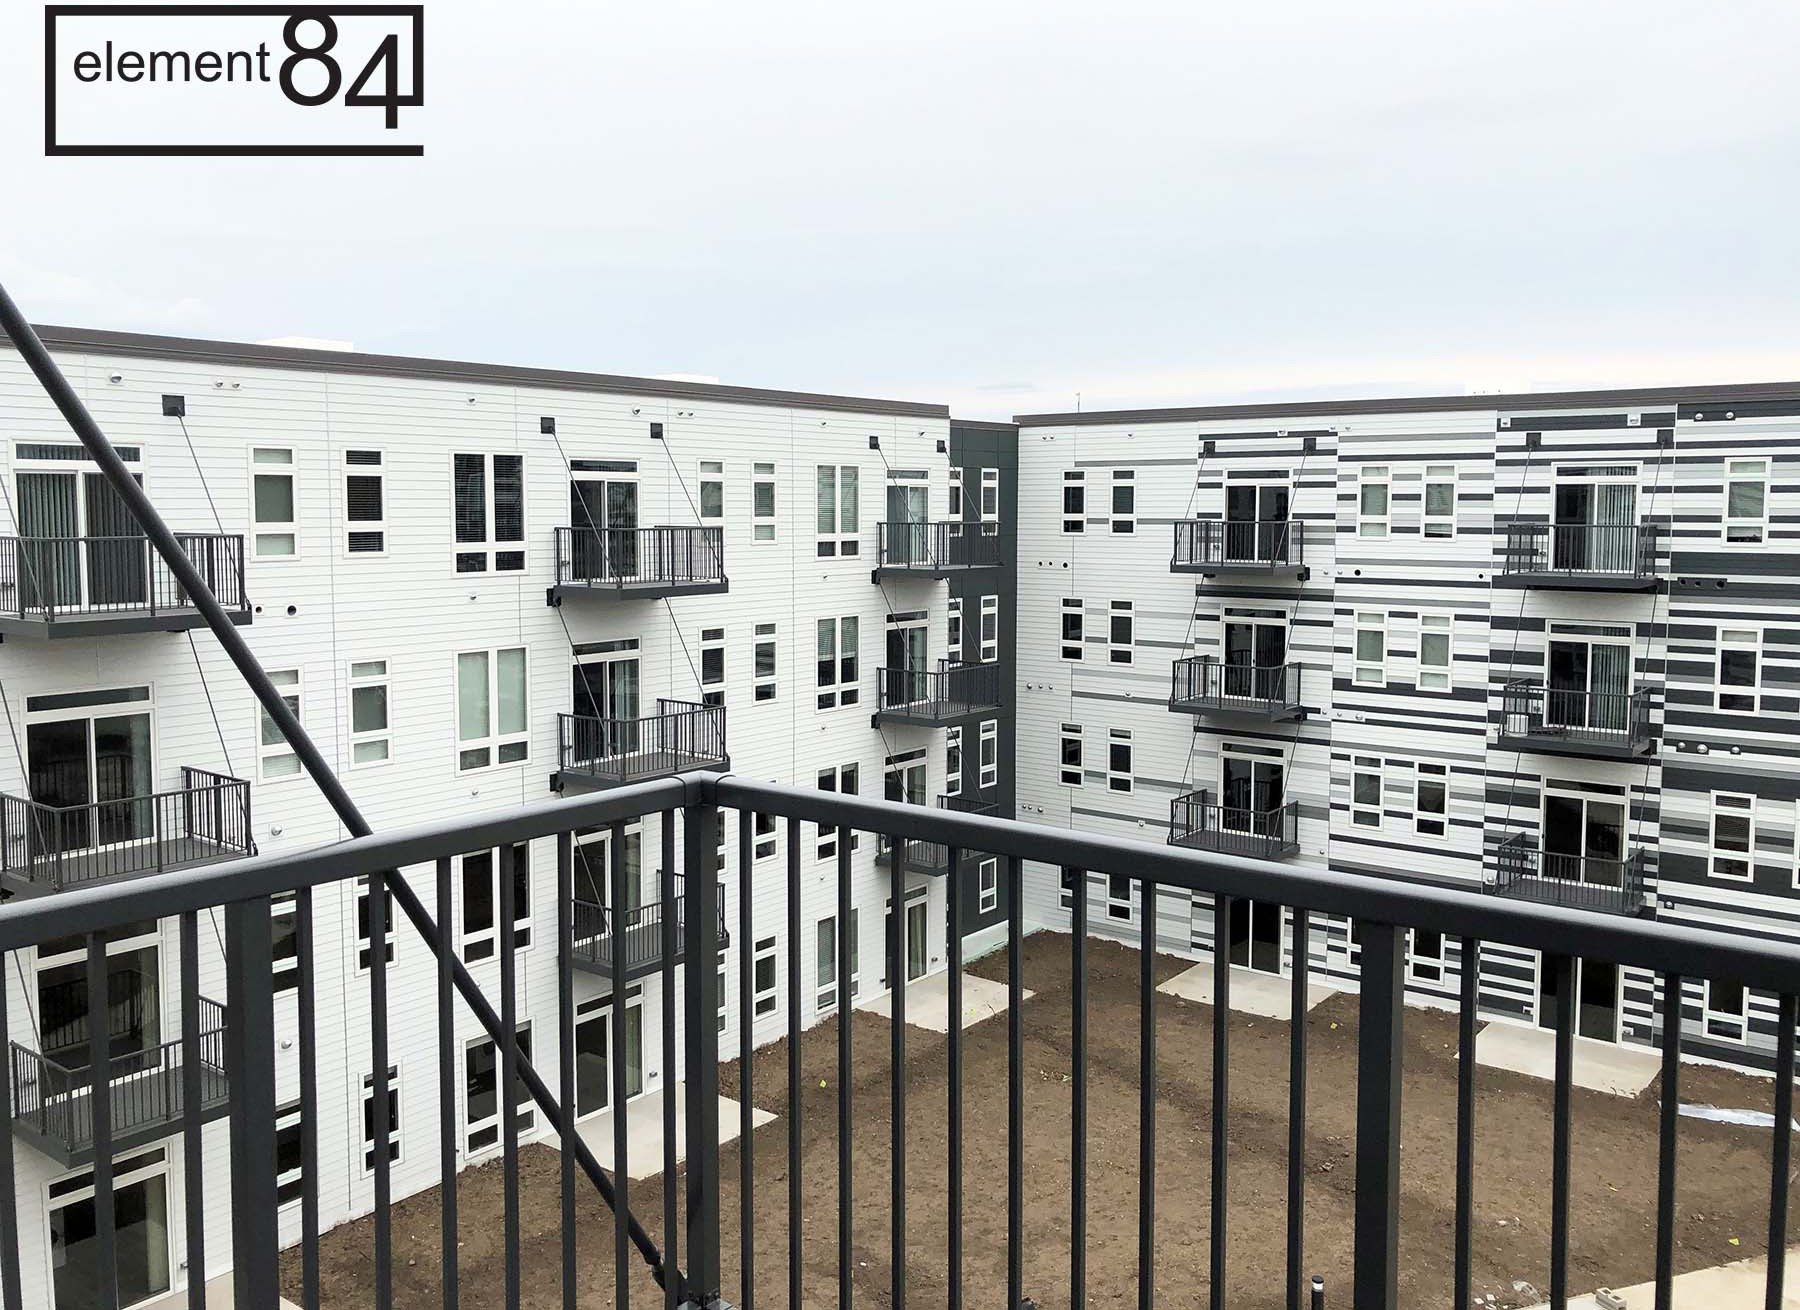 Apartments Near MCW Element 84 for Medical College of Wisconsin Students in Milwaukee, WI